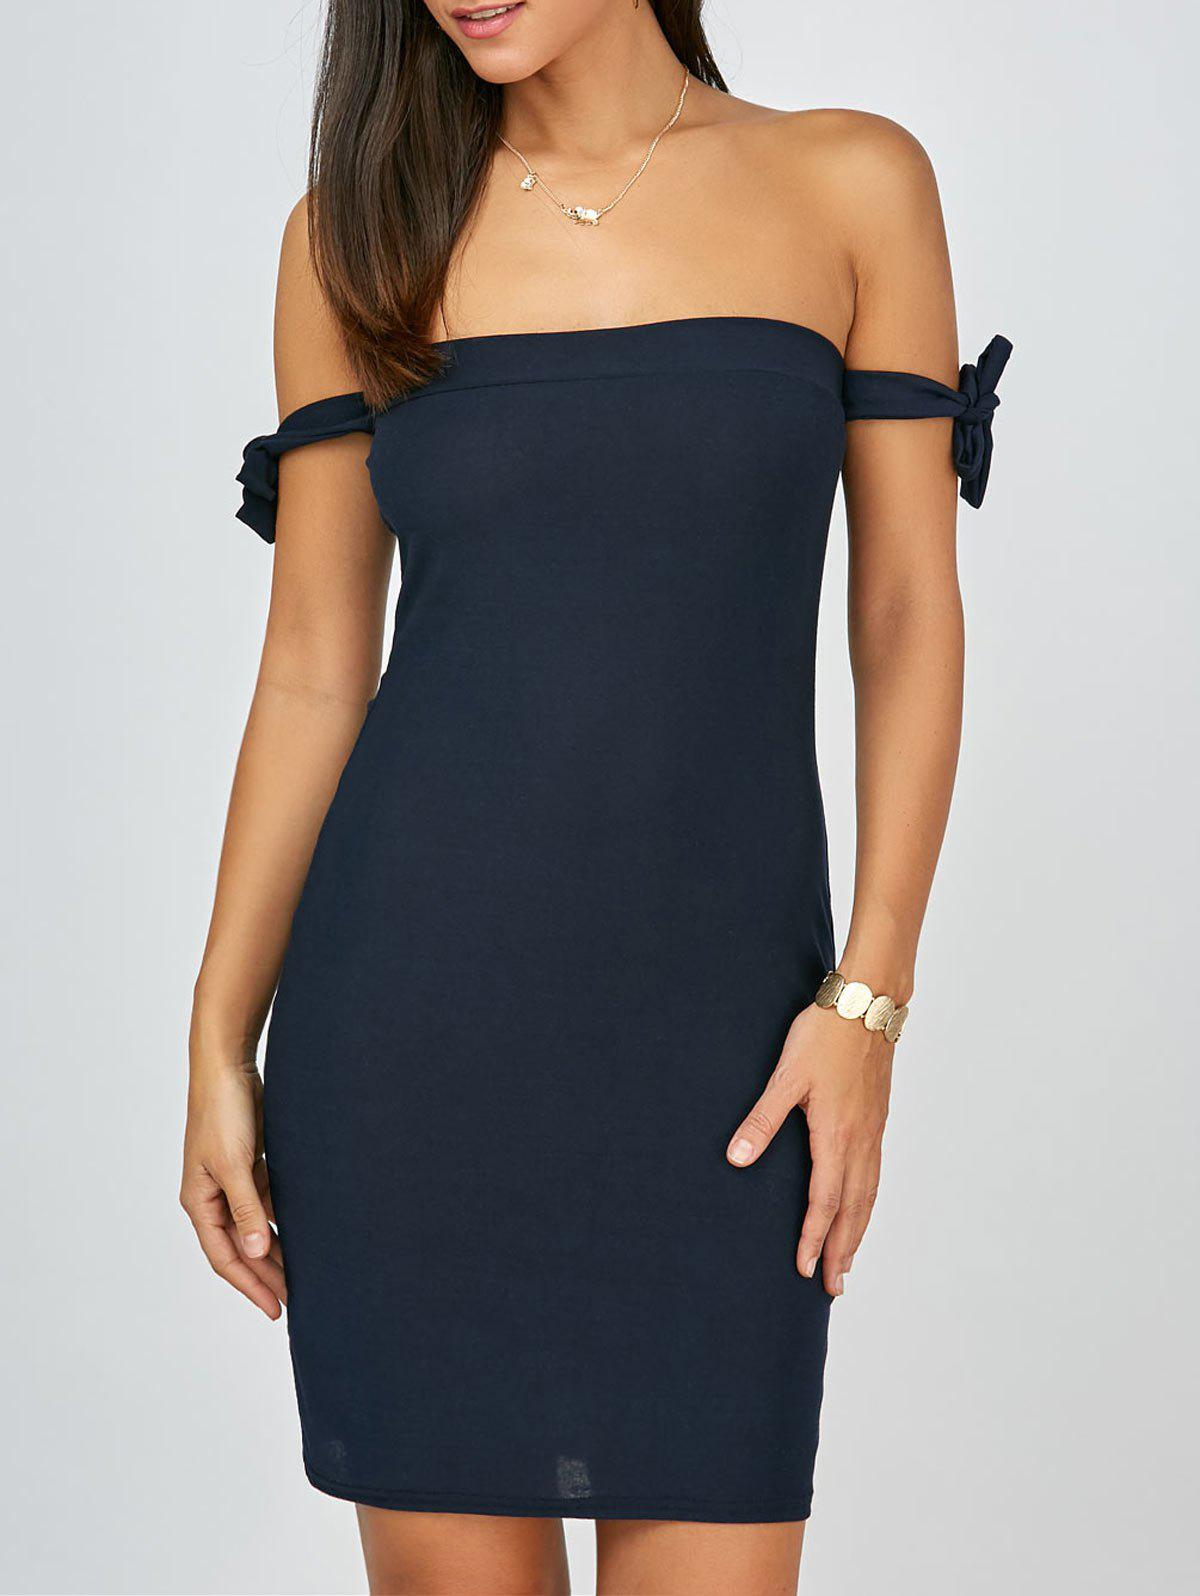 Hot Off The Shoulder Backless Mini Bodycon Club Dress